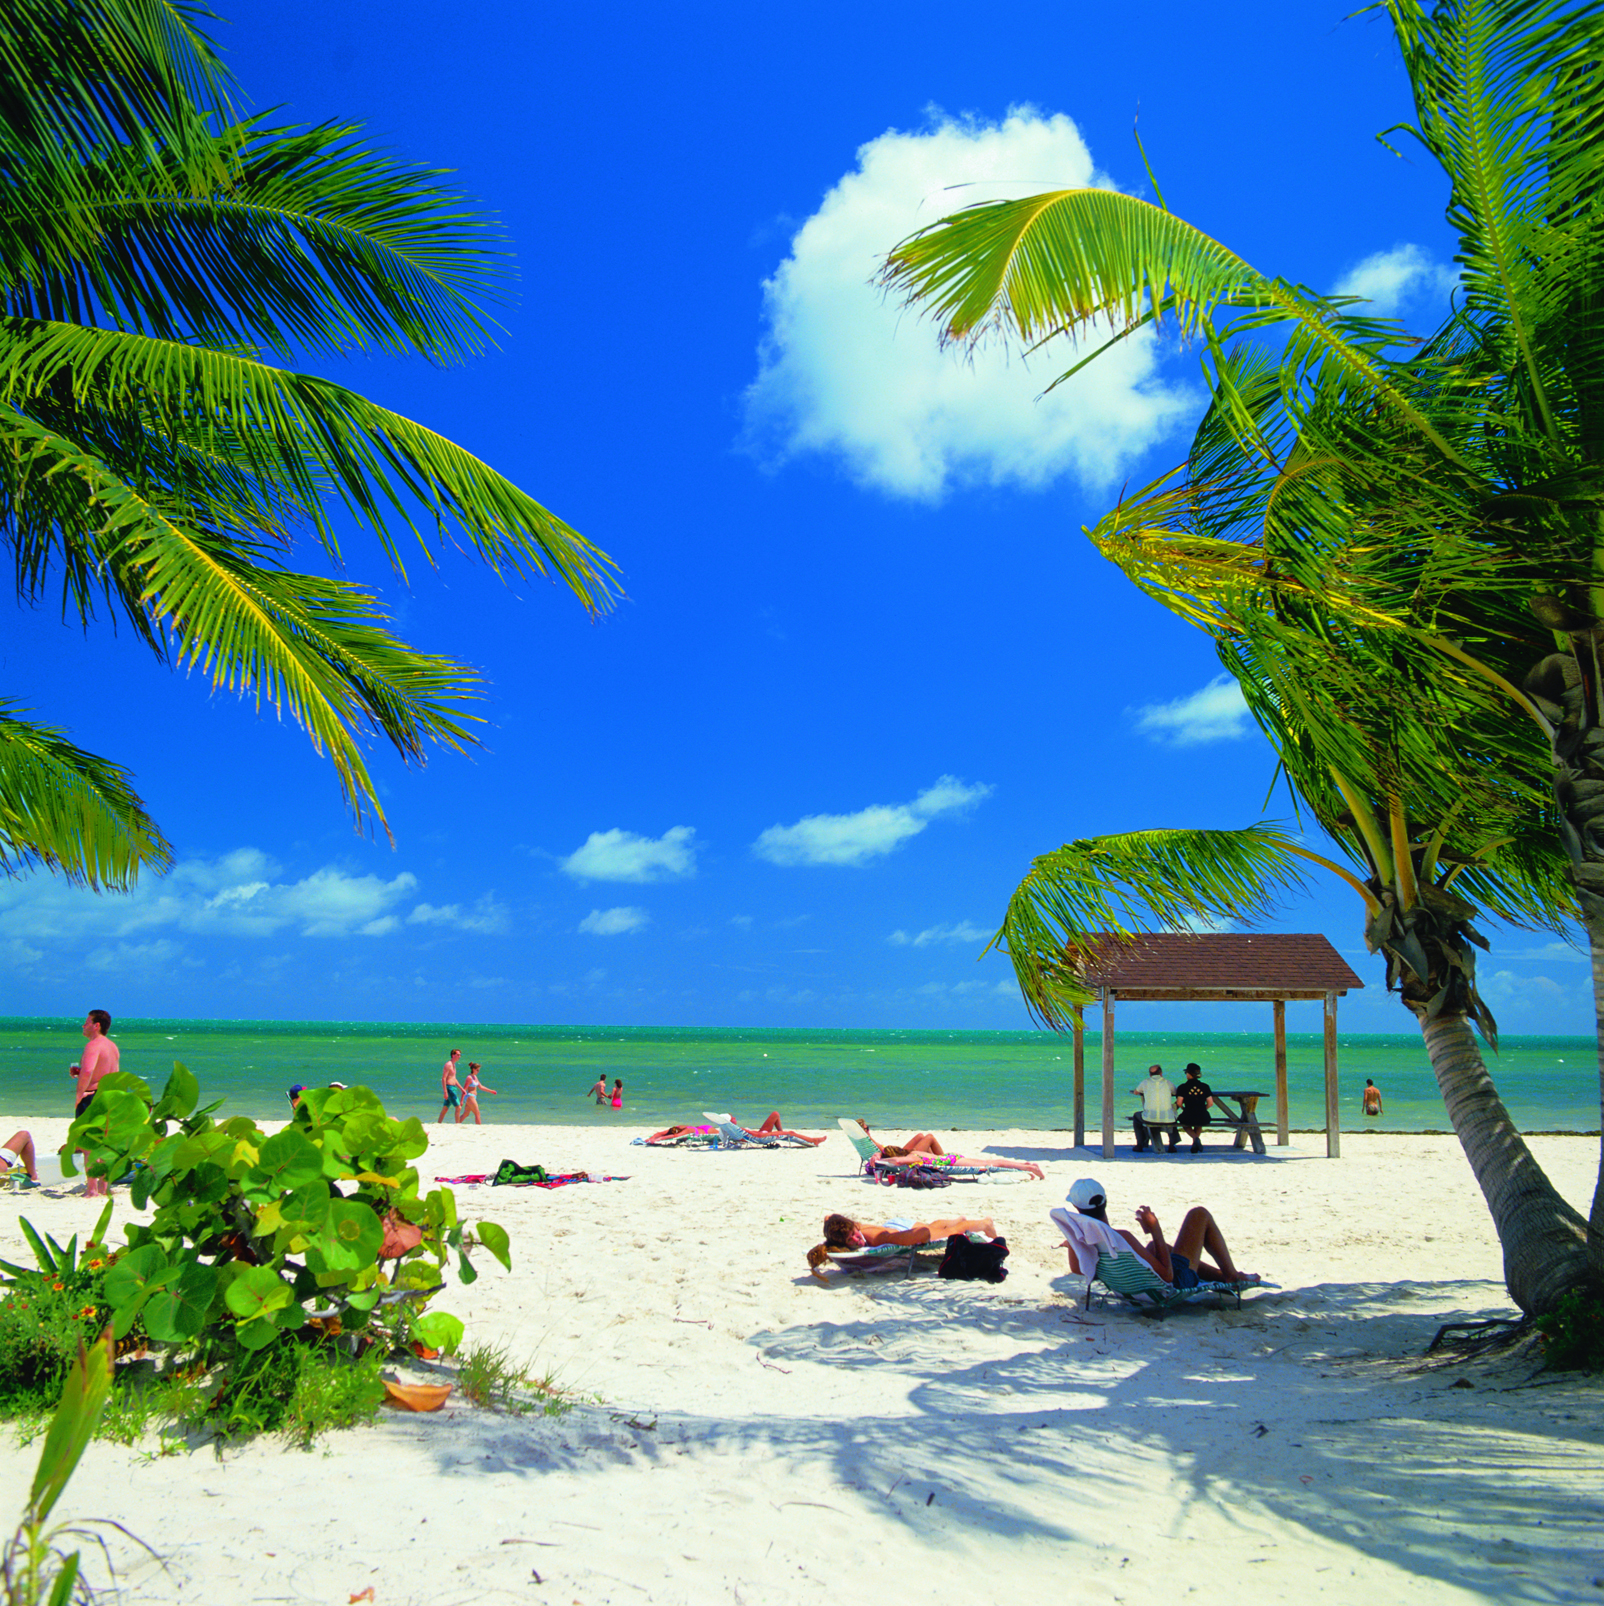 Travel Deals To Key West In January